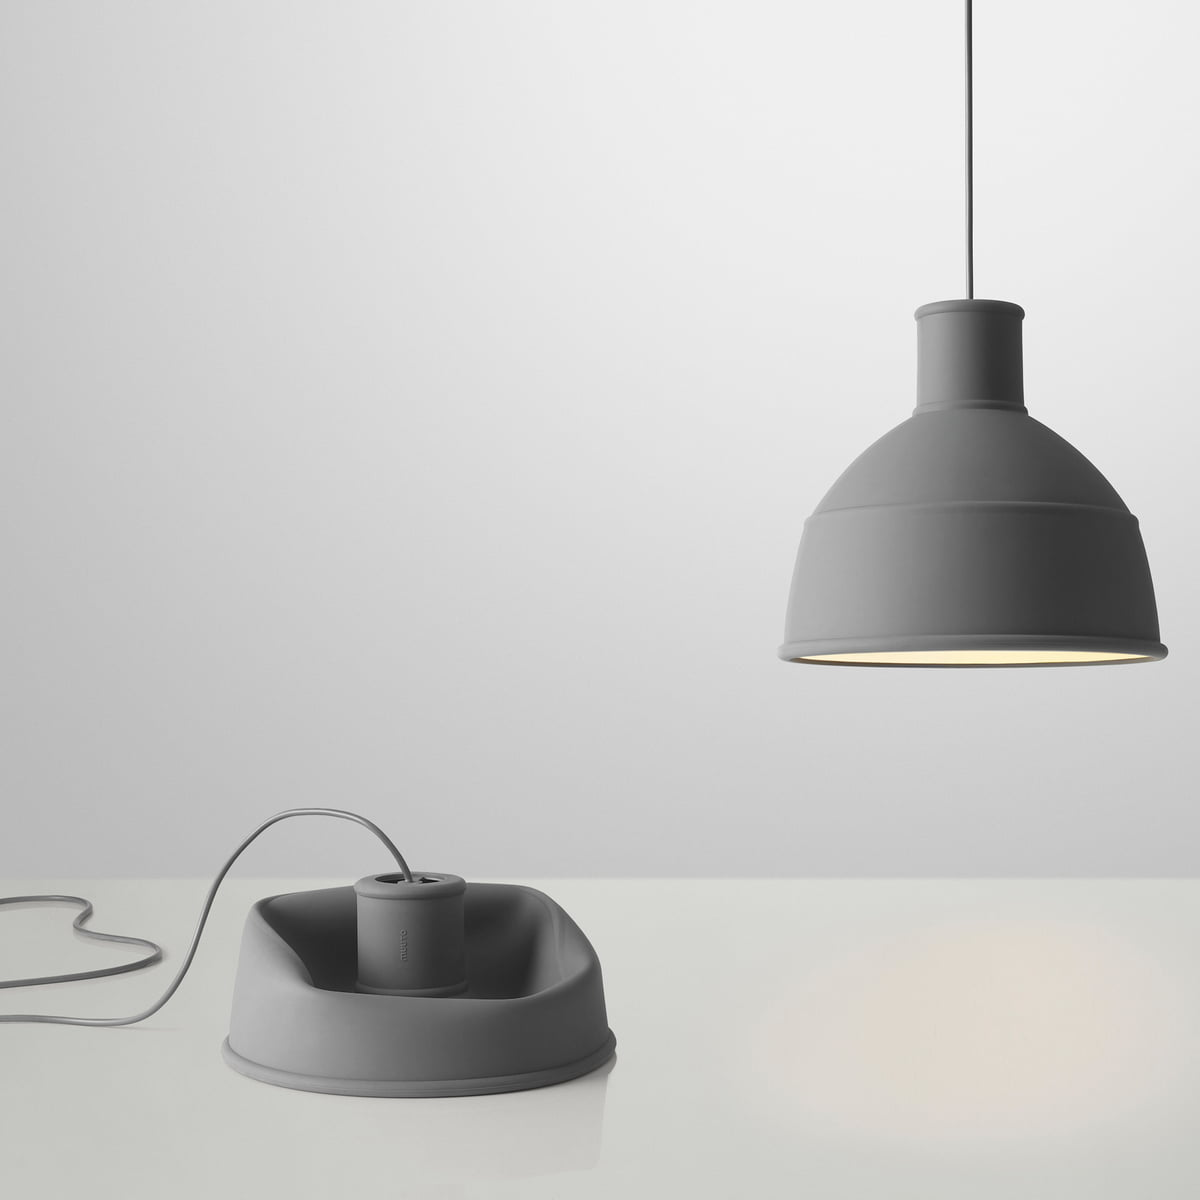 Unfold pendant lamp by muuto connox shop muuto unfold pendant lamp grey mozeypictures Images